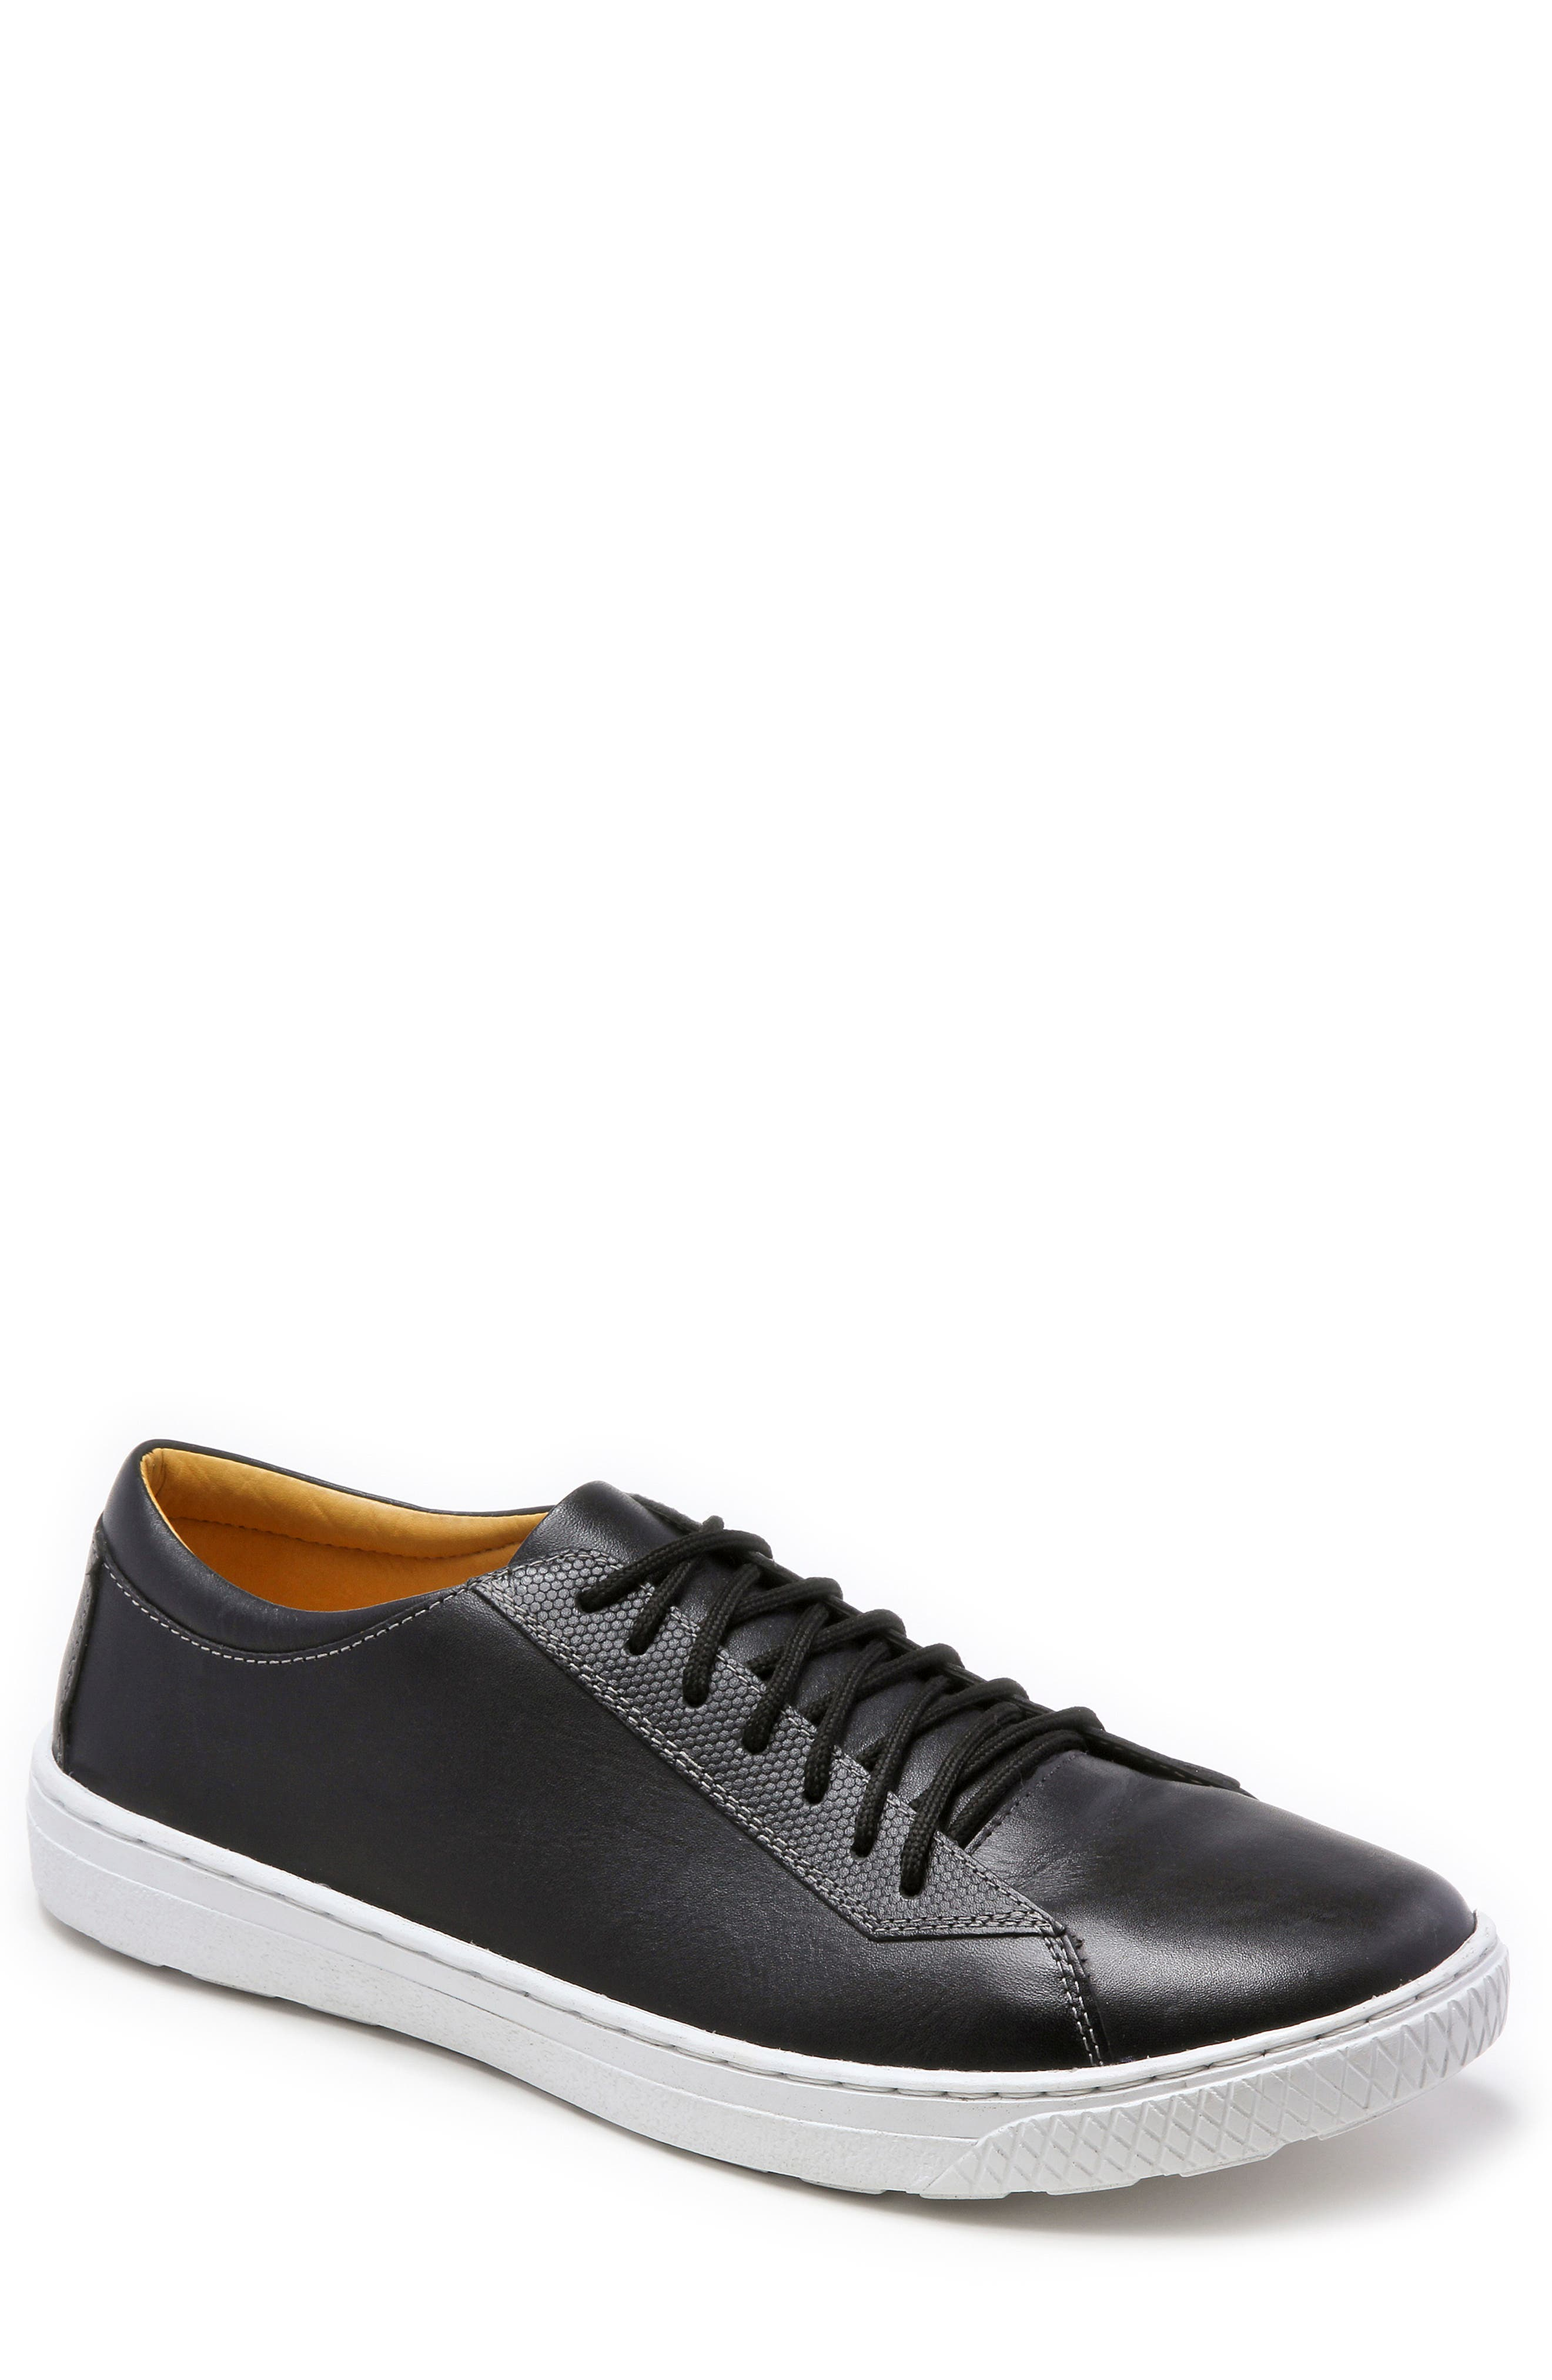 Minh Low Top Sneaker,                             Main thumbnail 1, color,                             BLACK LEATHER